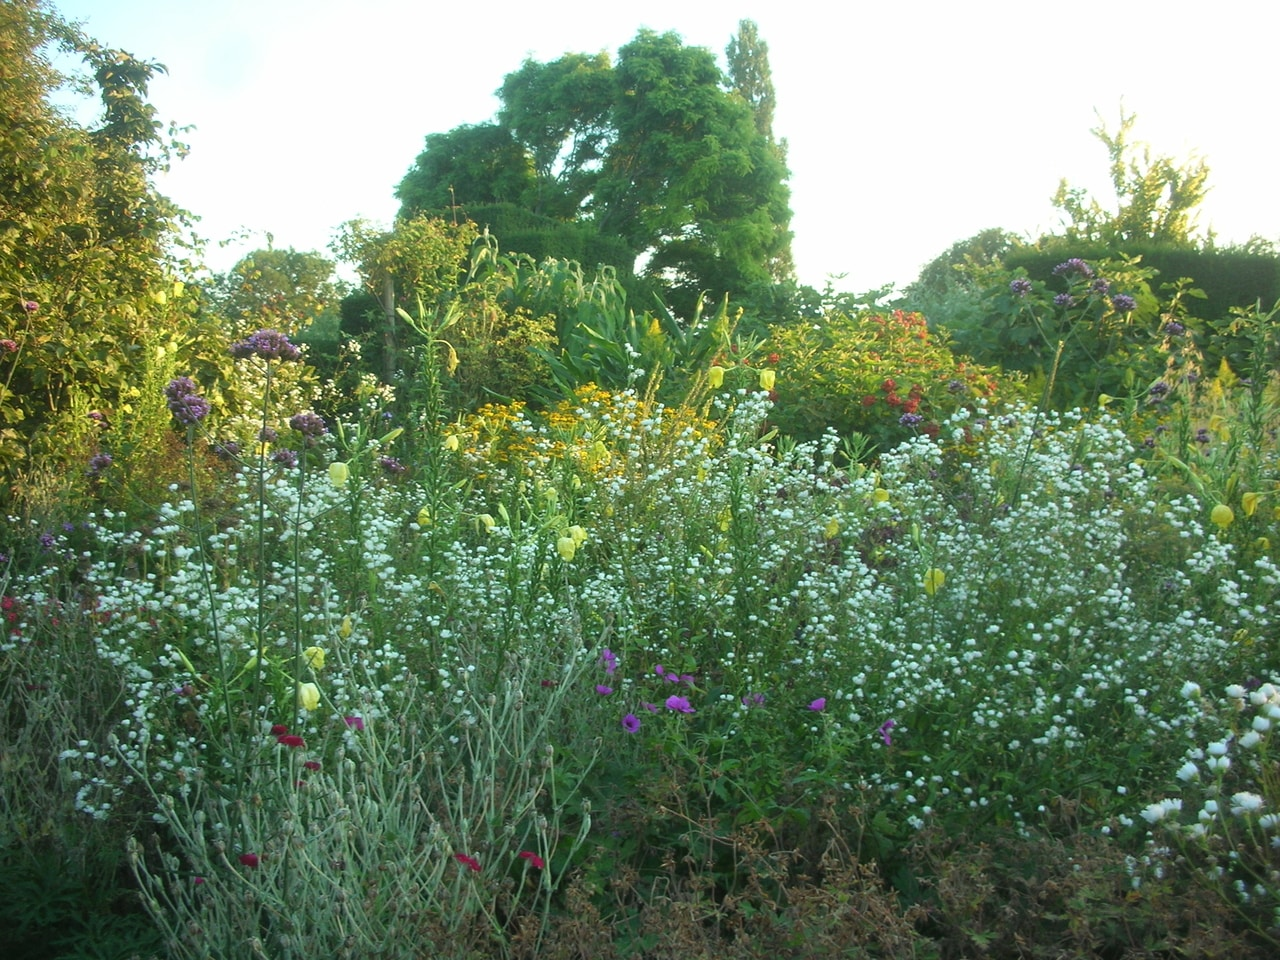 One of the beds at Great Dixter garden with lots of self sowers like Erigeron annus, Verbena bonariensis, Lychnis coronaria and evening primrose threading through plantings